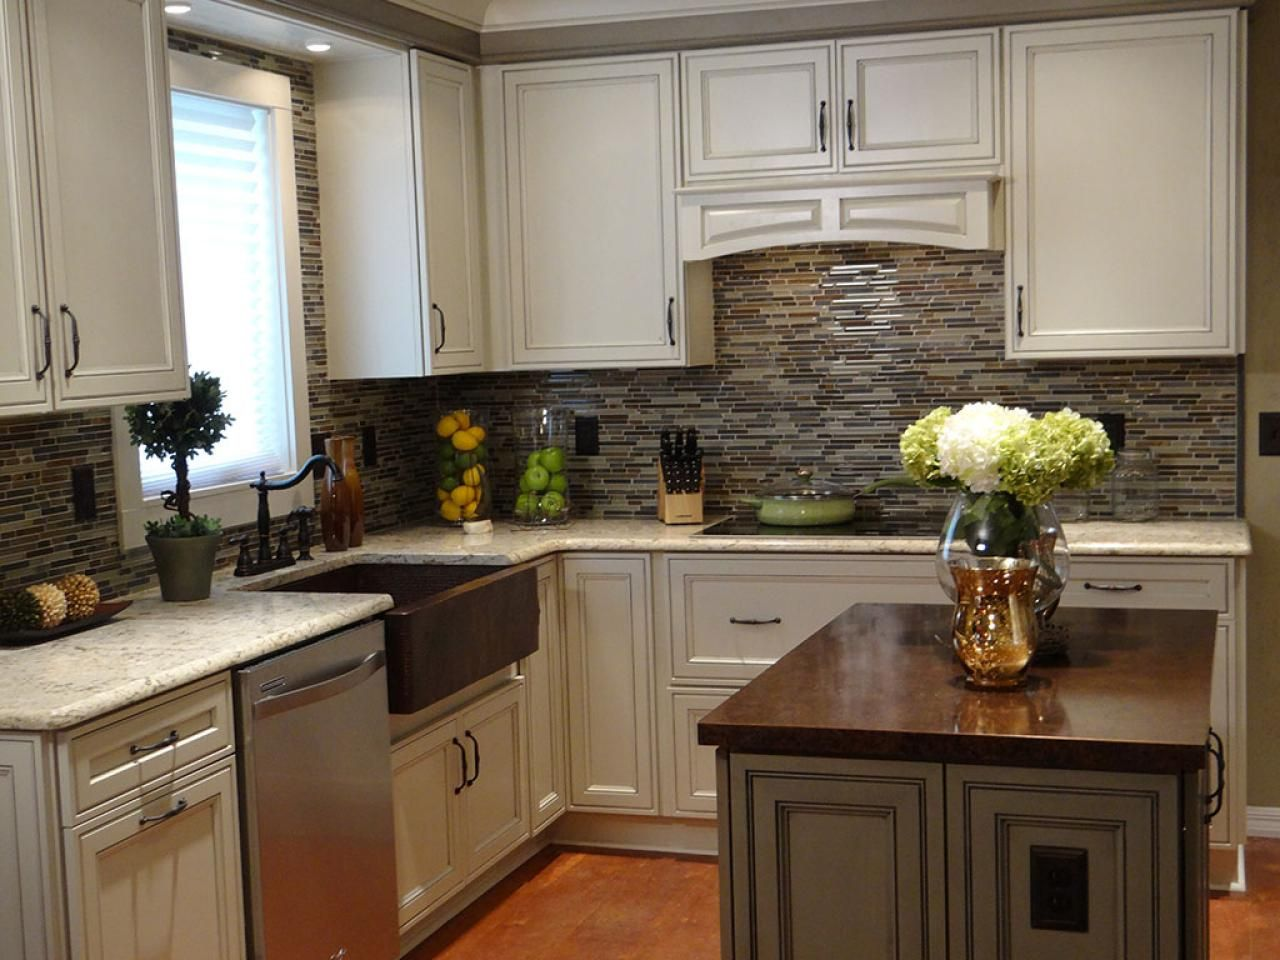 20 Small Kitchen Makeovers By Hgtv Hosts Designs Choose Layouts Remodeling Materials